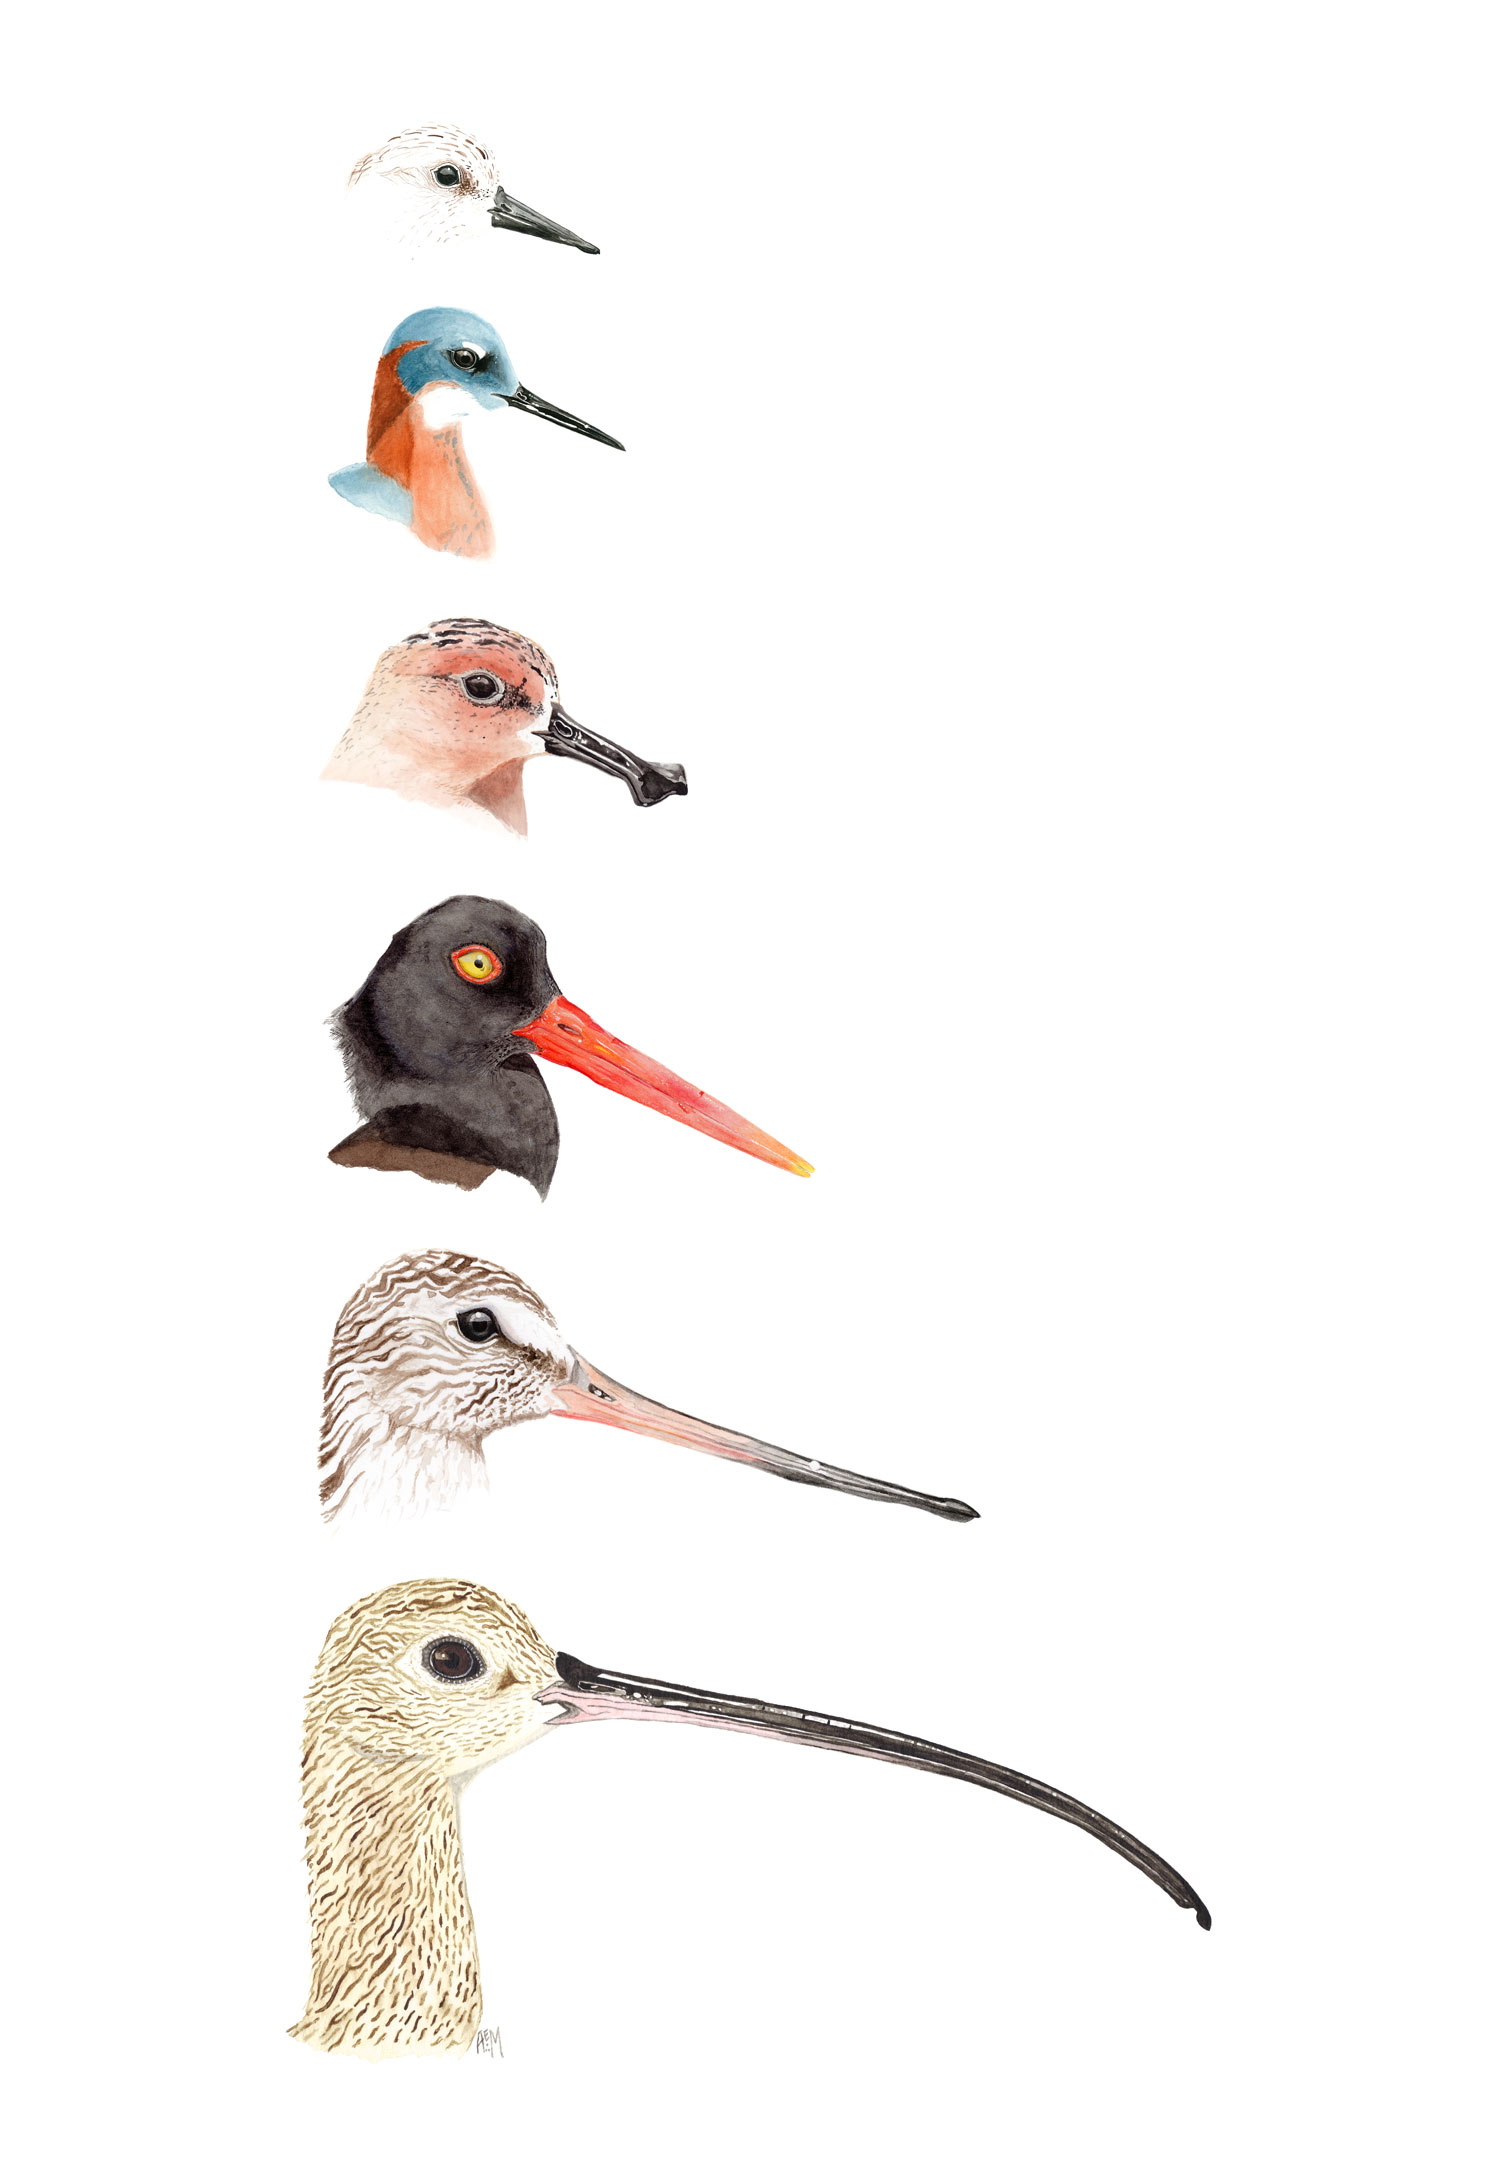 Shorebird Bill Morphology